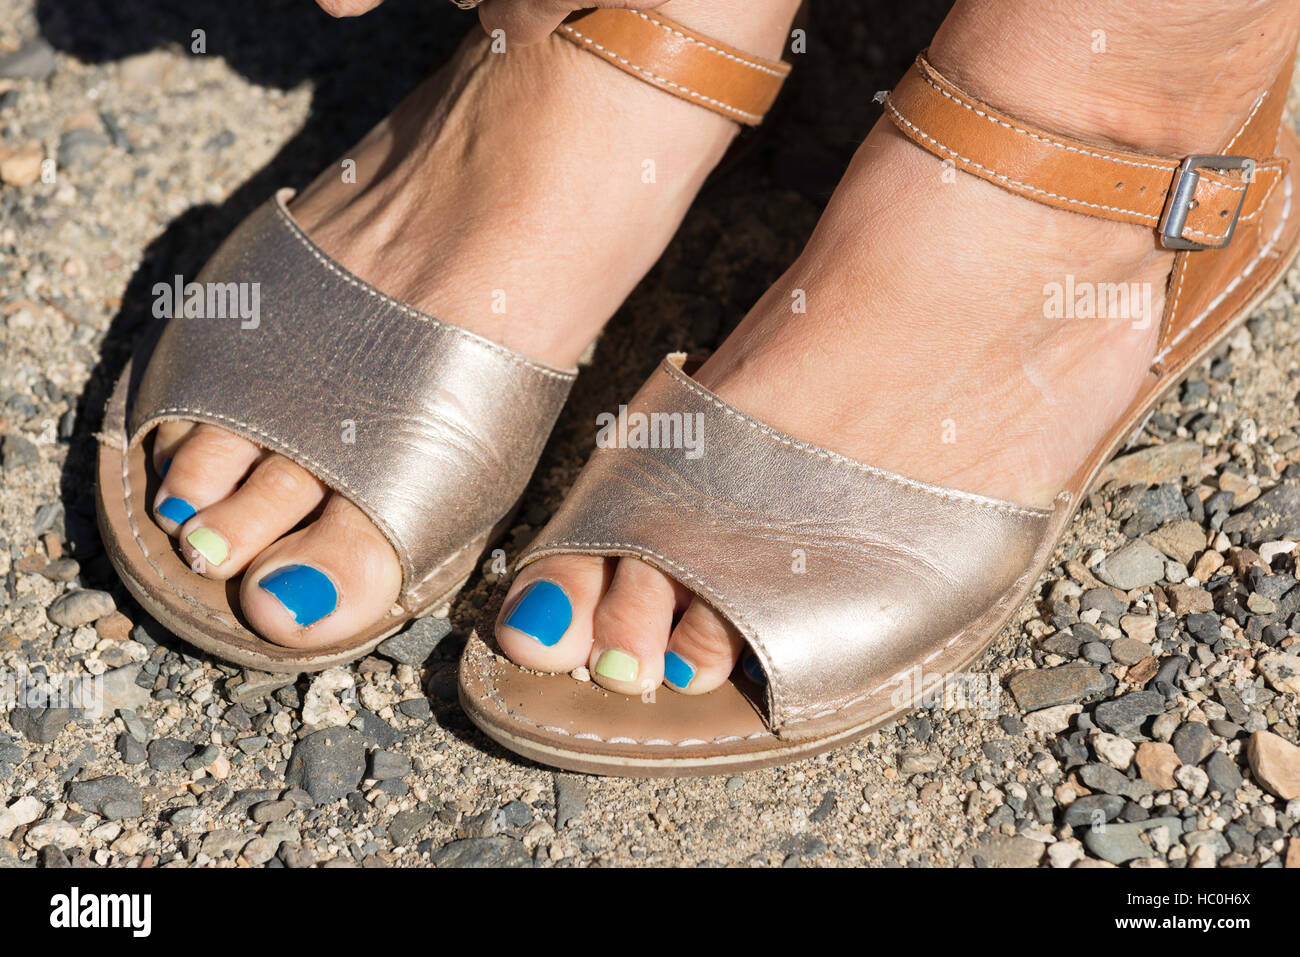 Woman's feet with sandals and painted toenails. - Stock Image